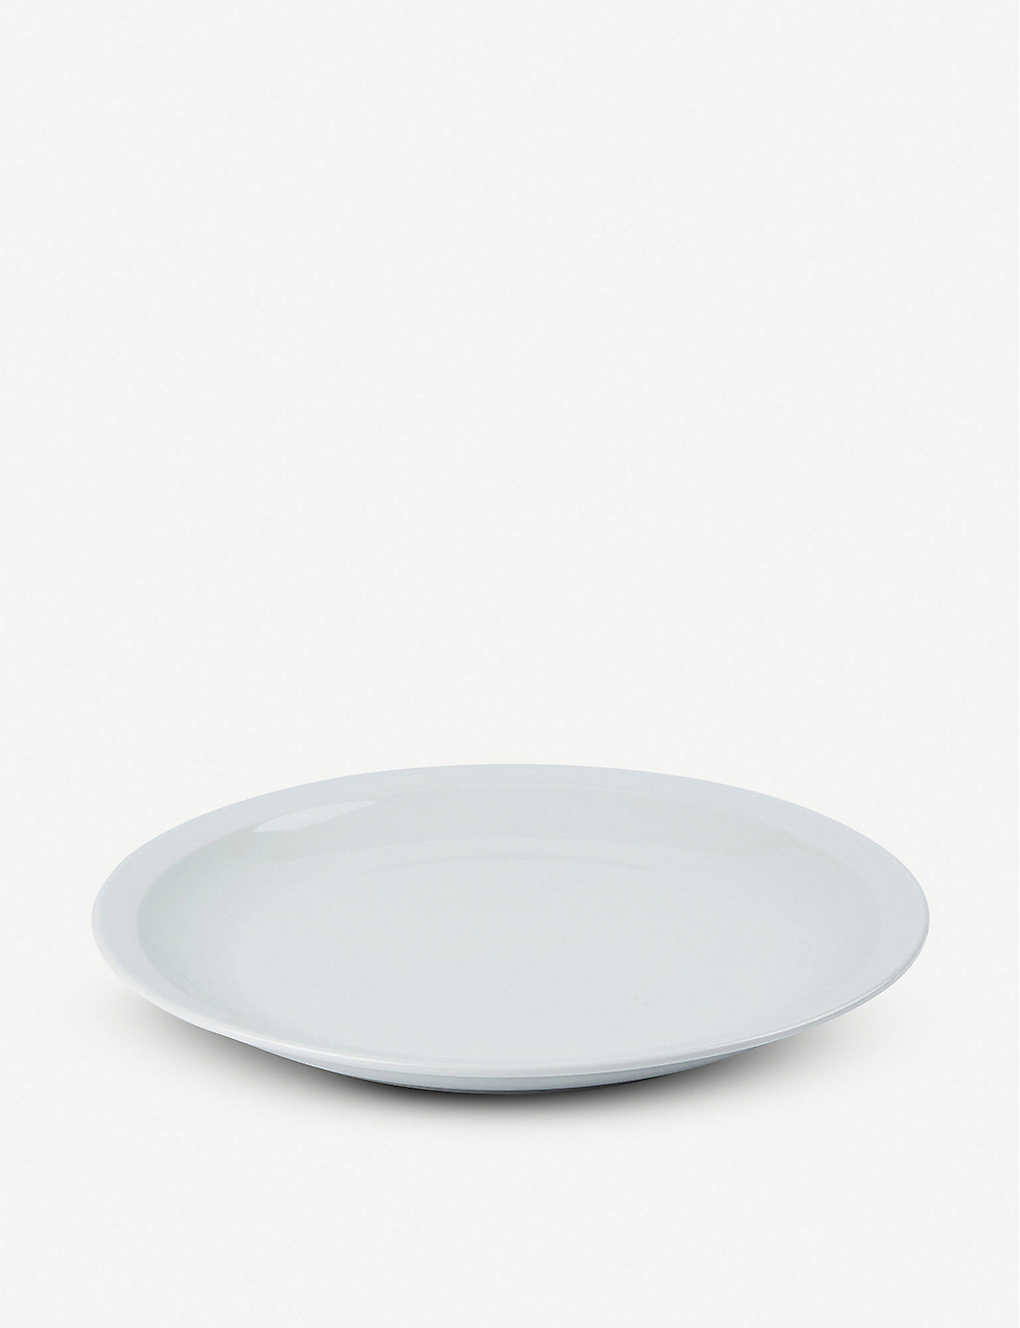 THE CONRAN SHOP: Pillivuyt Orbit porcelain dinner plate 27cm